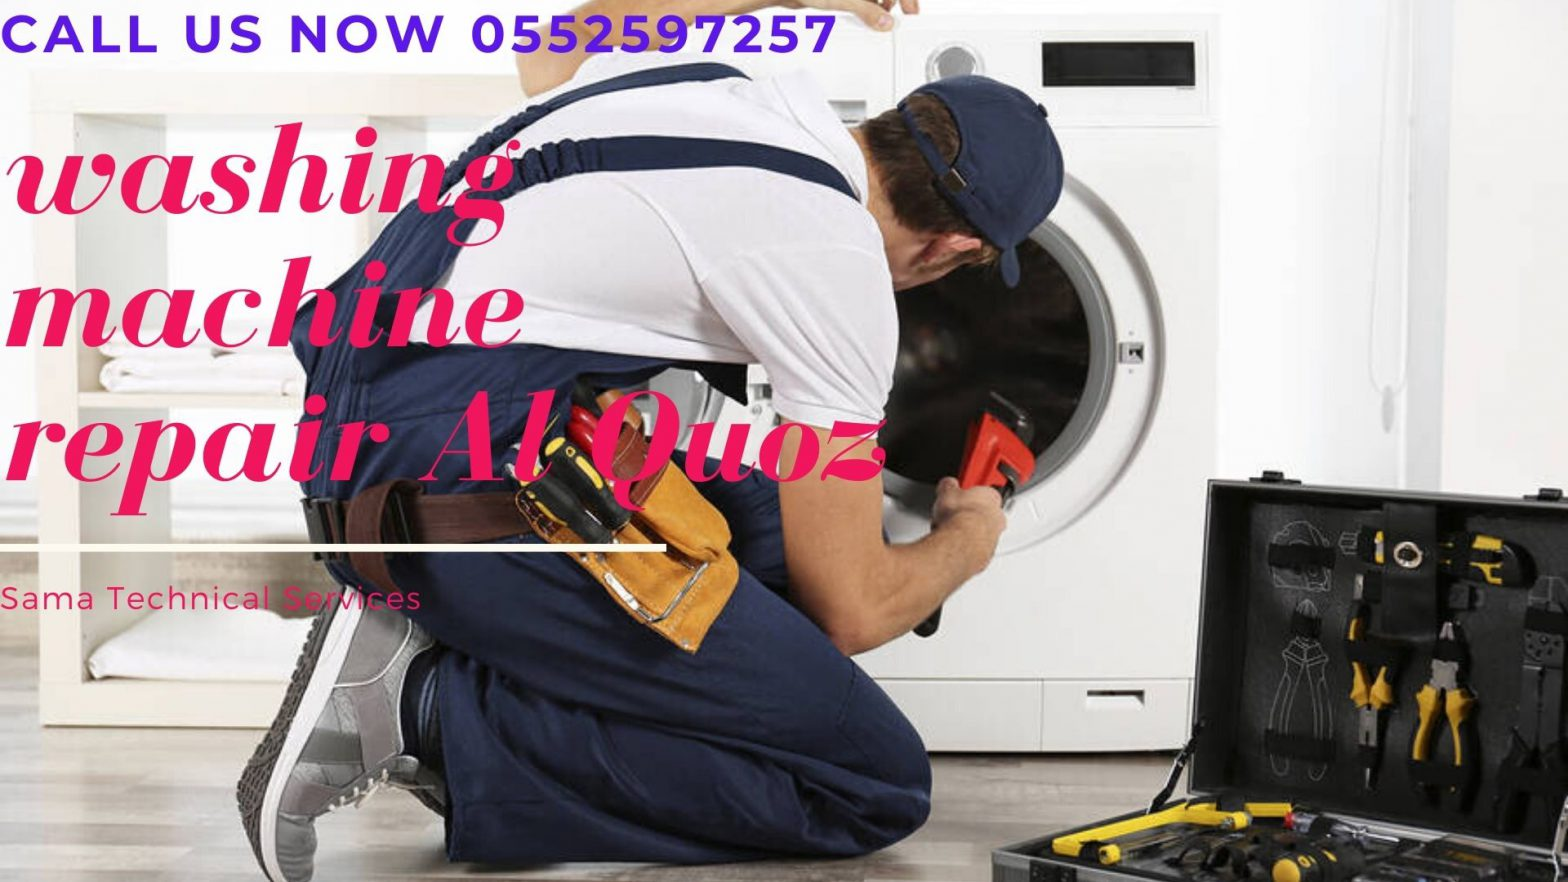 Washing machine repair Al Quoz